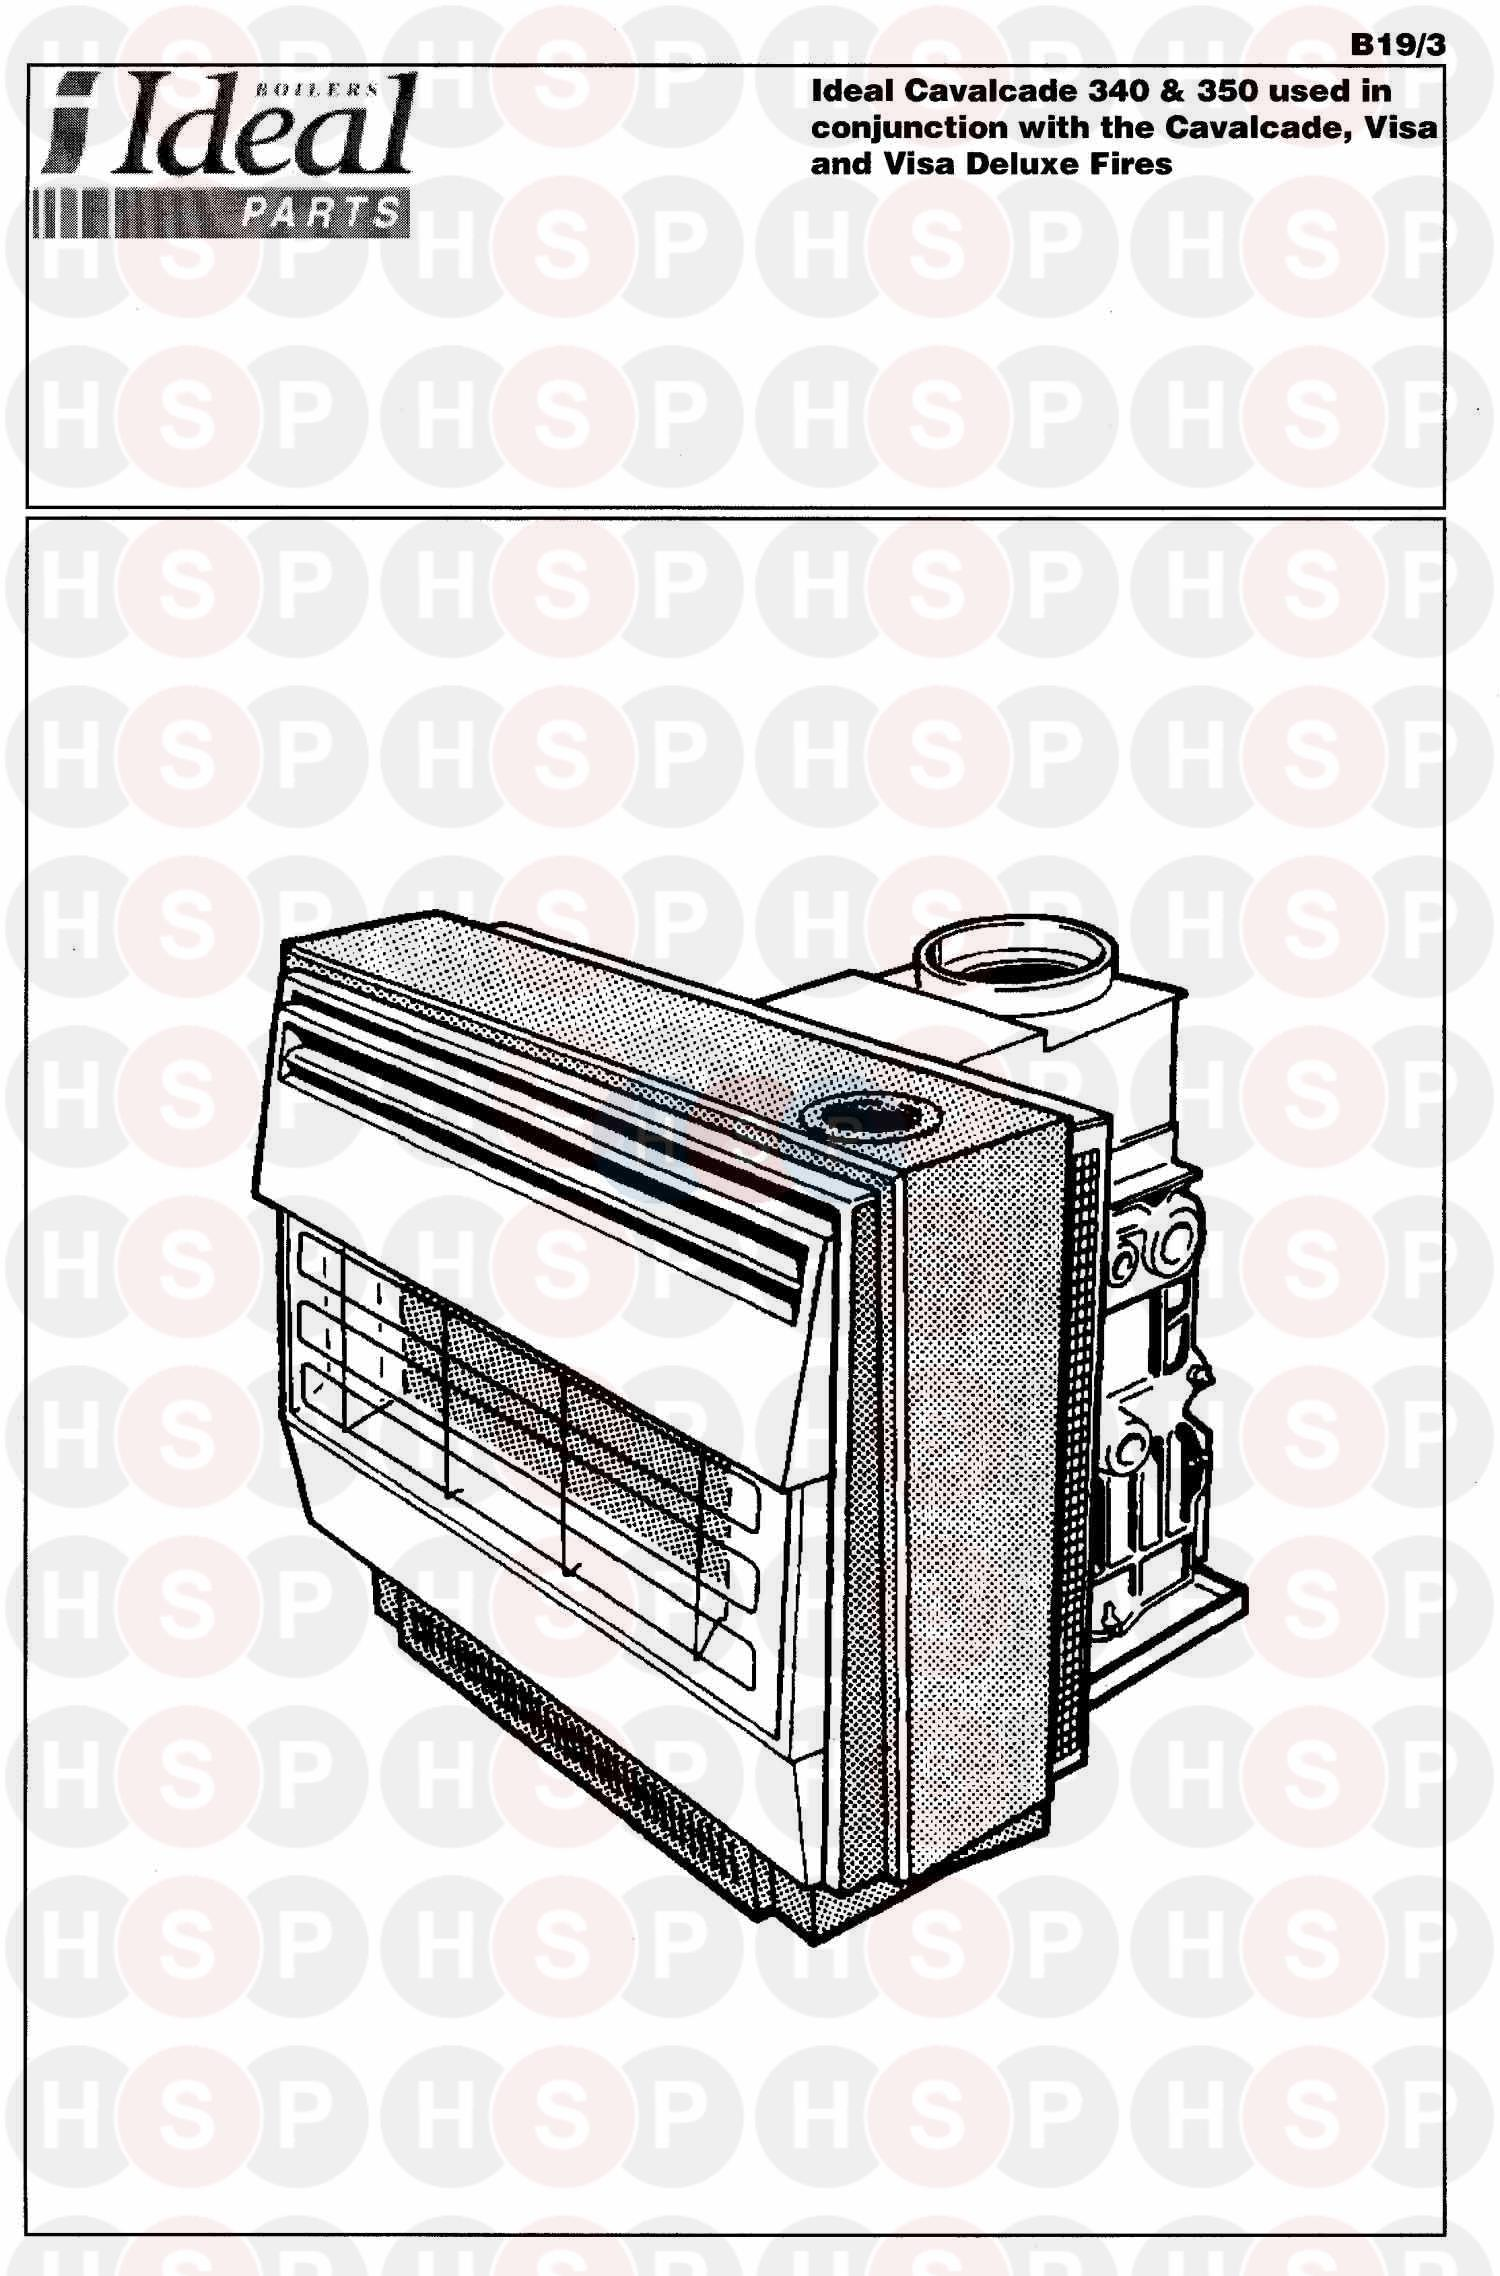 APPLIANCE OVERVIEW diagram for Ideal VISA DELUXE FIRE